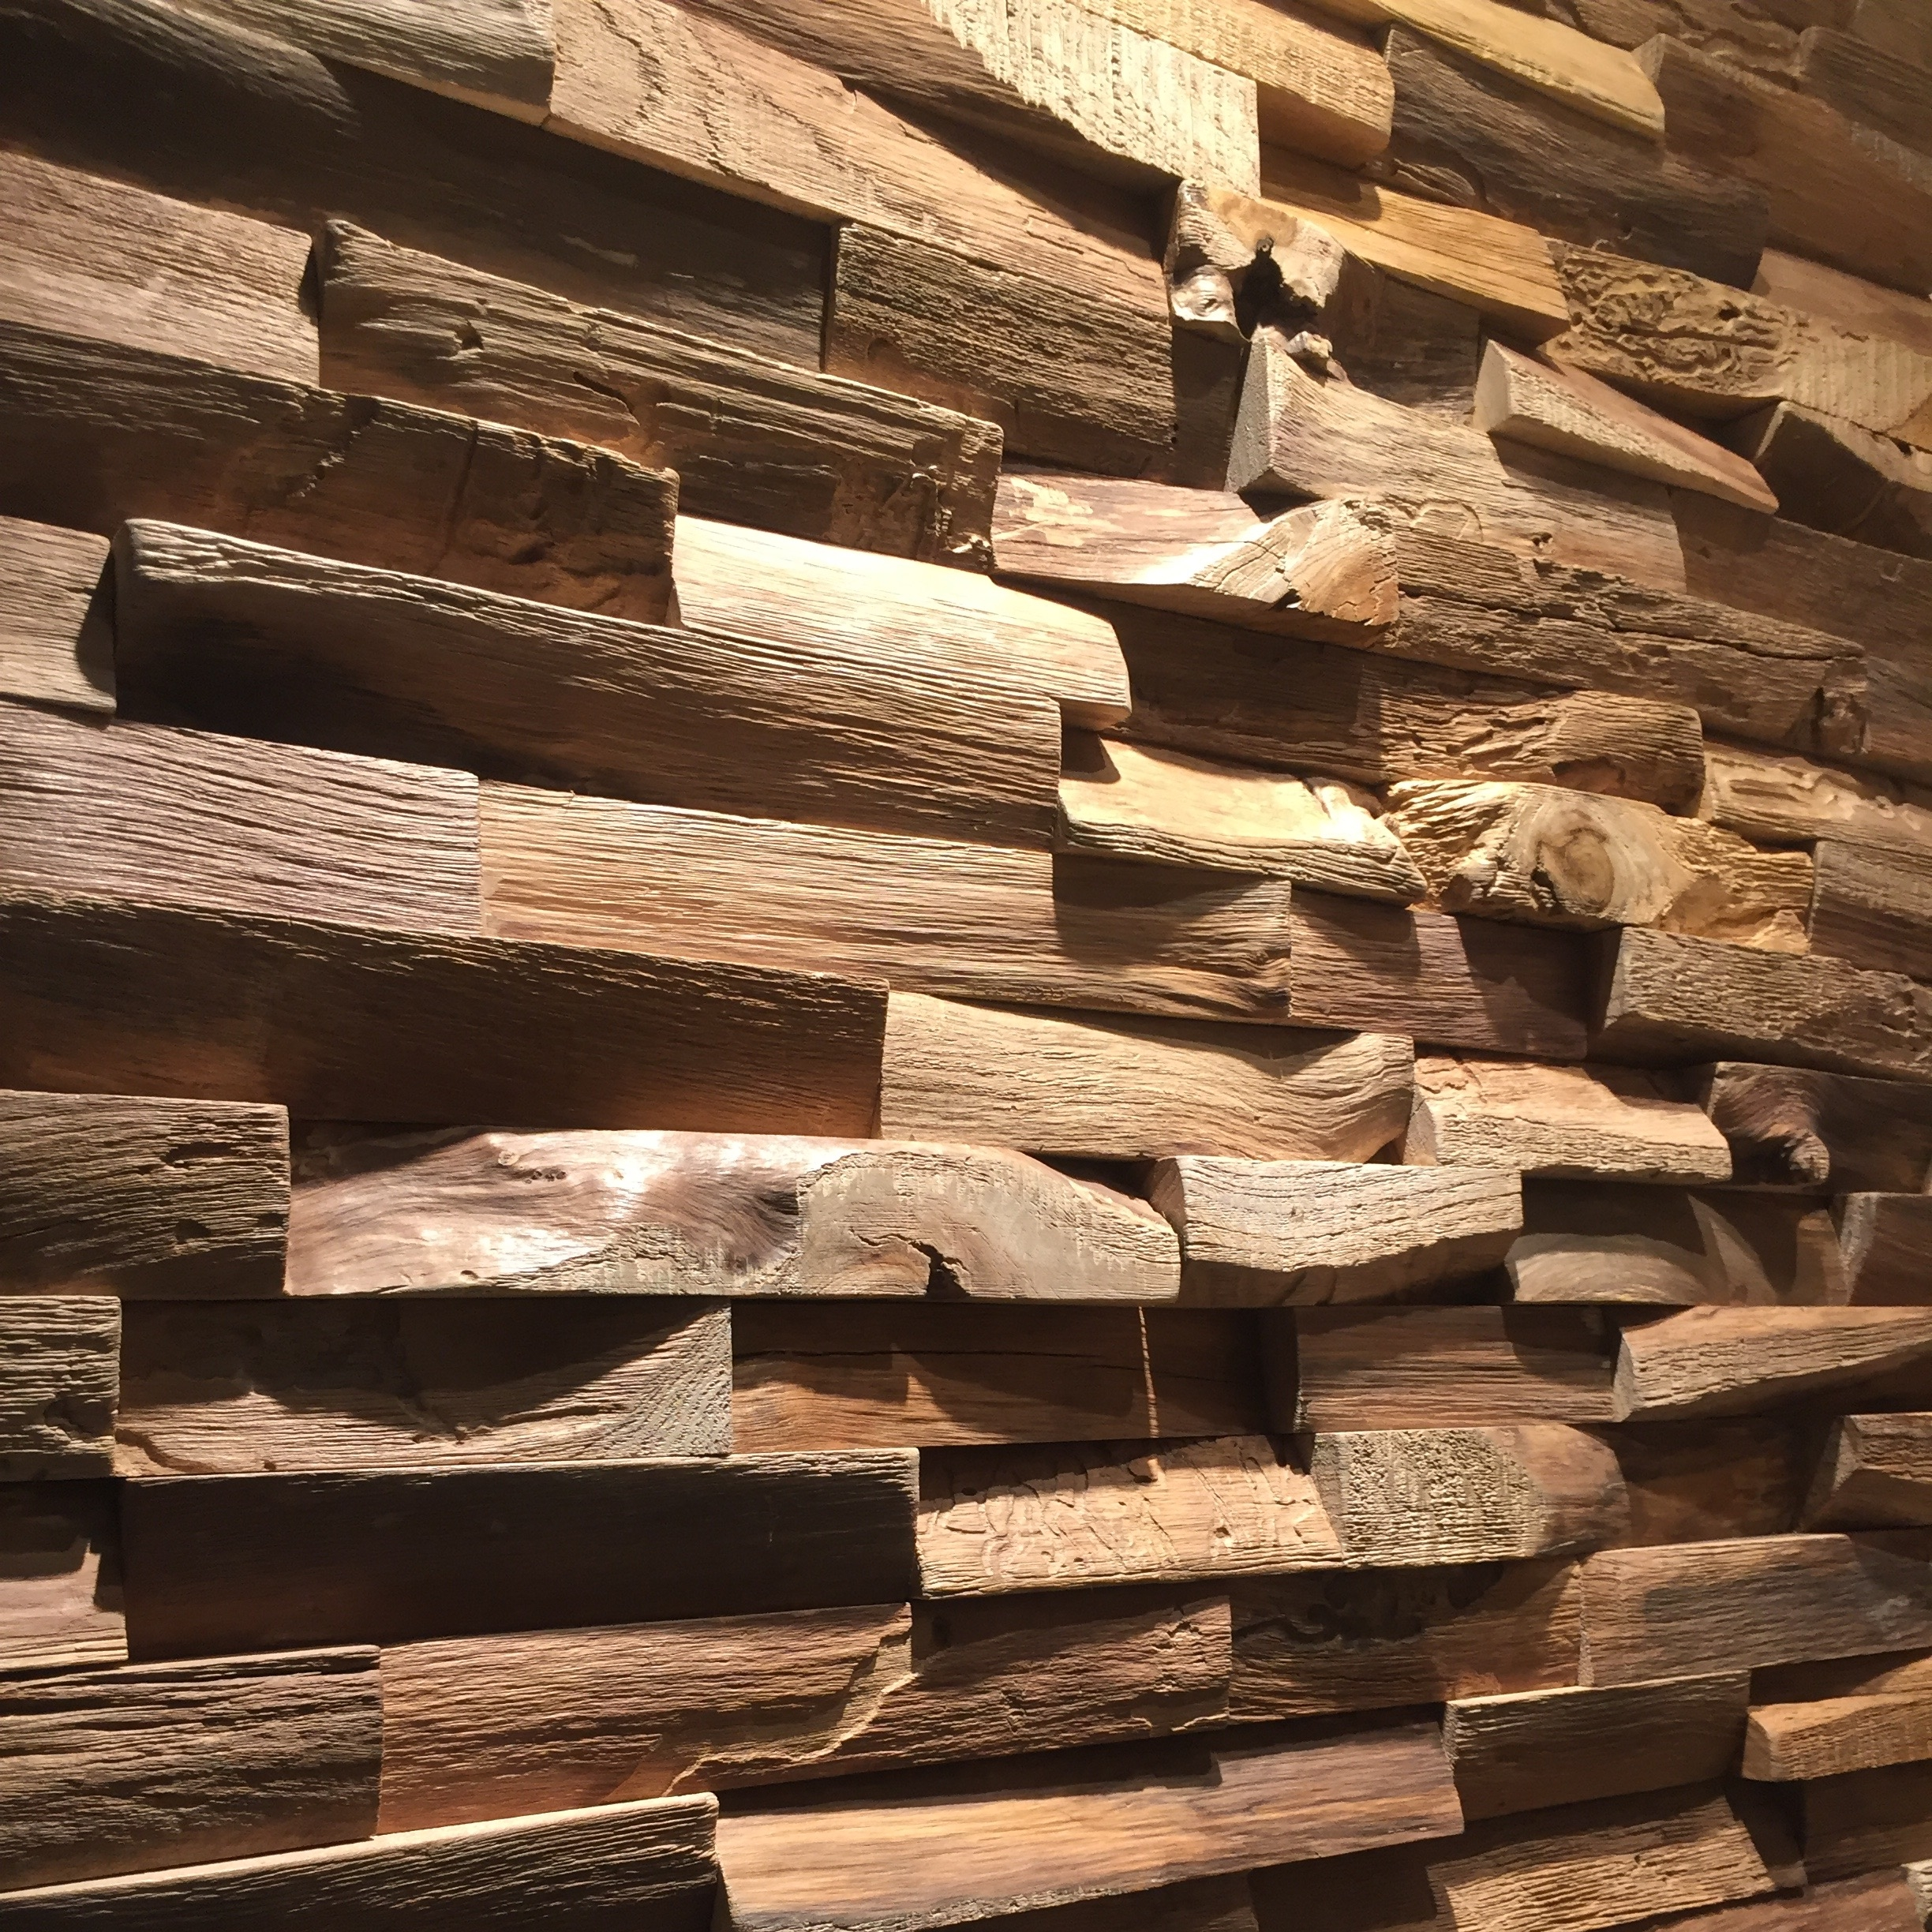 RECYCLED TEAK WOOD WALL PANELS - The waste from rough cut pieces of Teak logs reclaimed and made into beautiful relief wall panels showcase the natural beauty of raw teak.